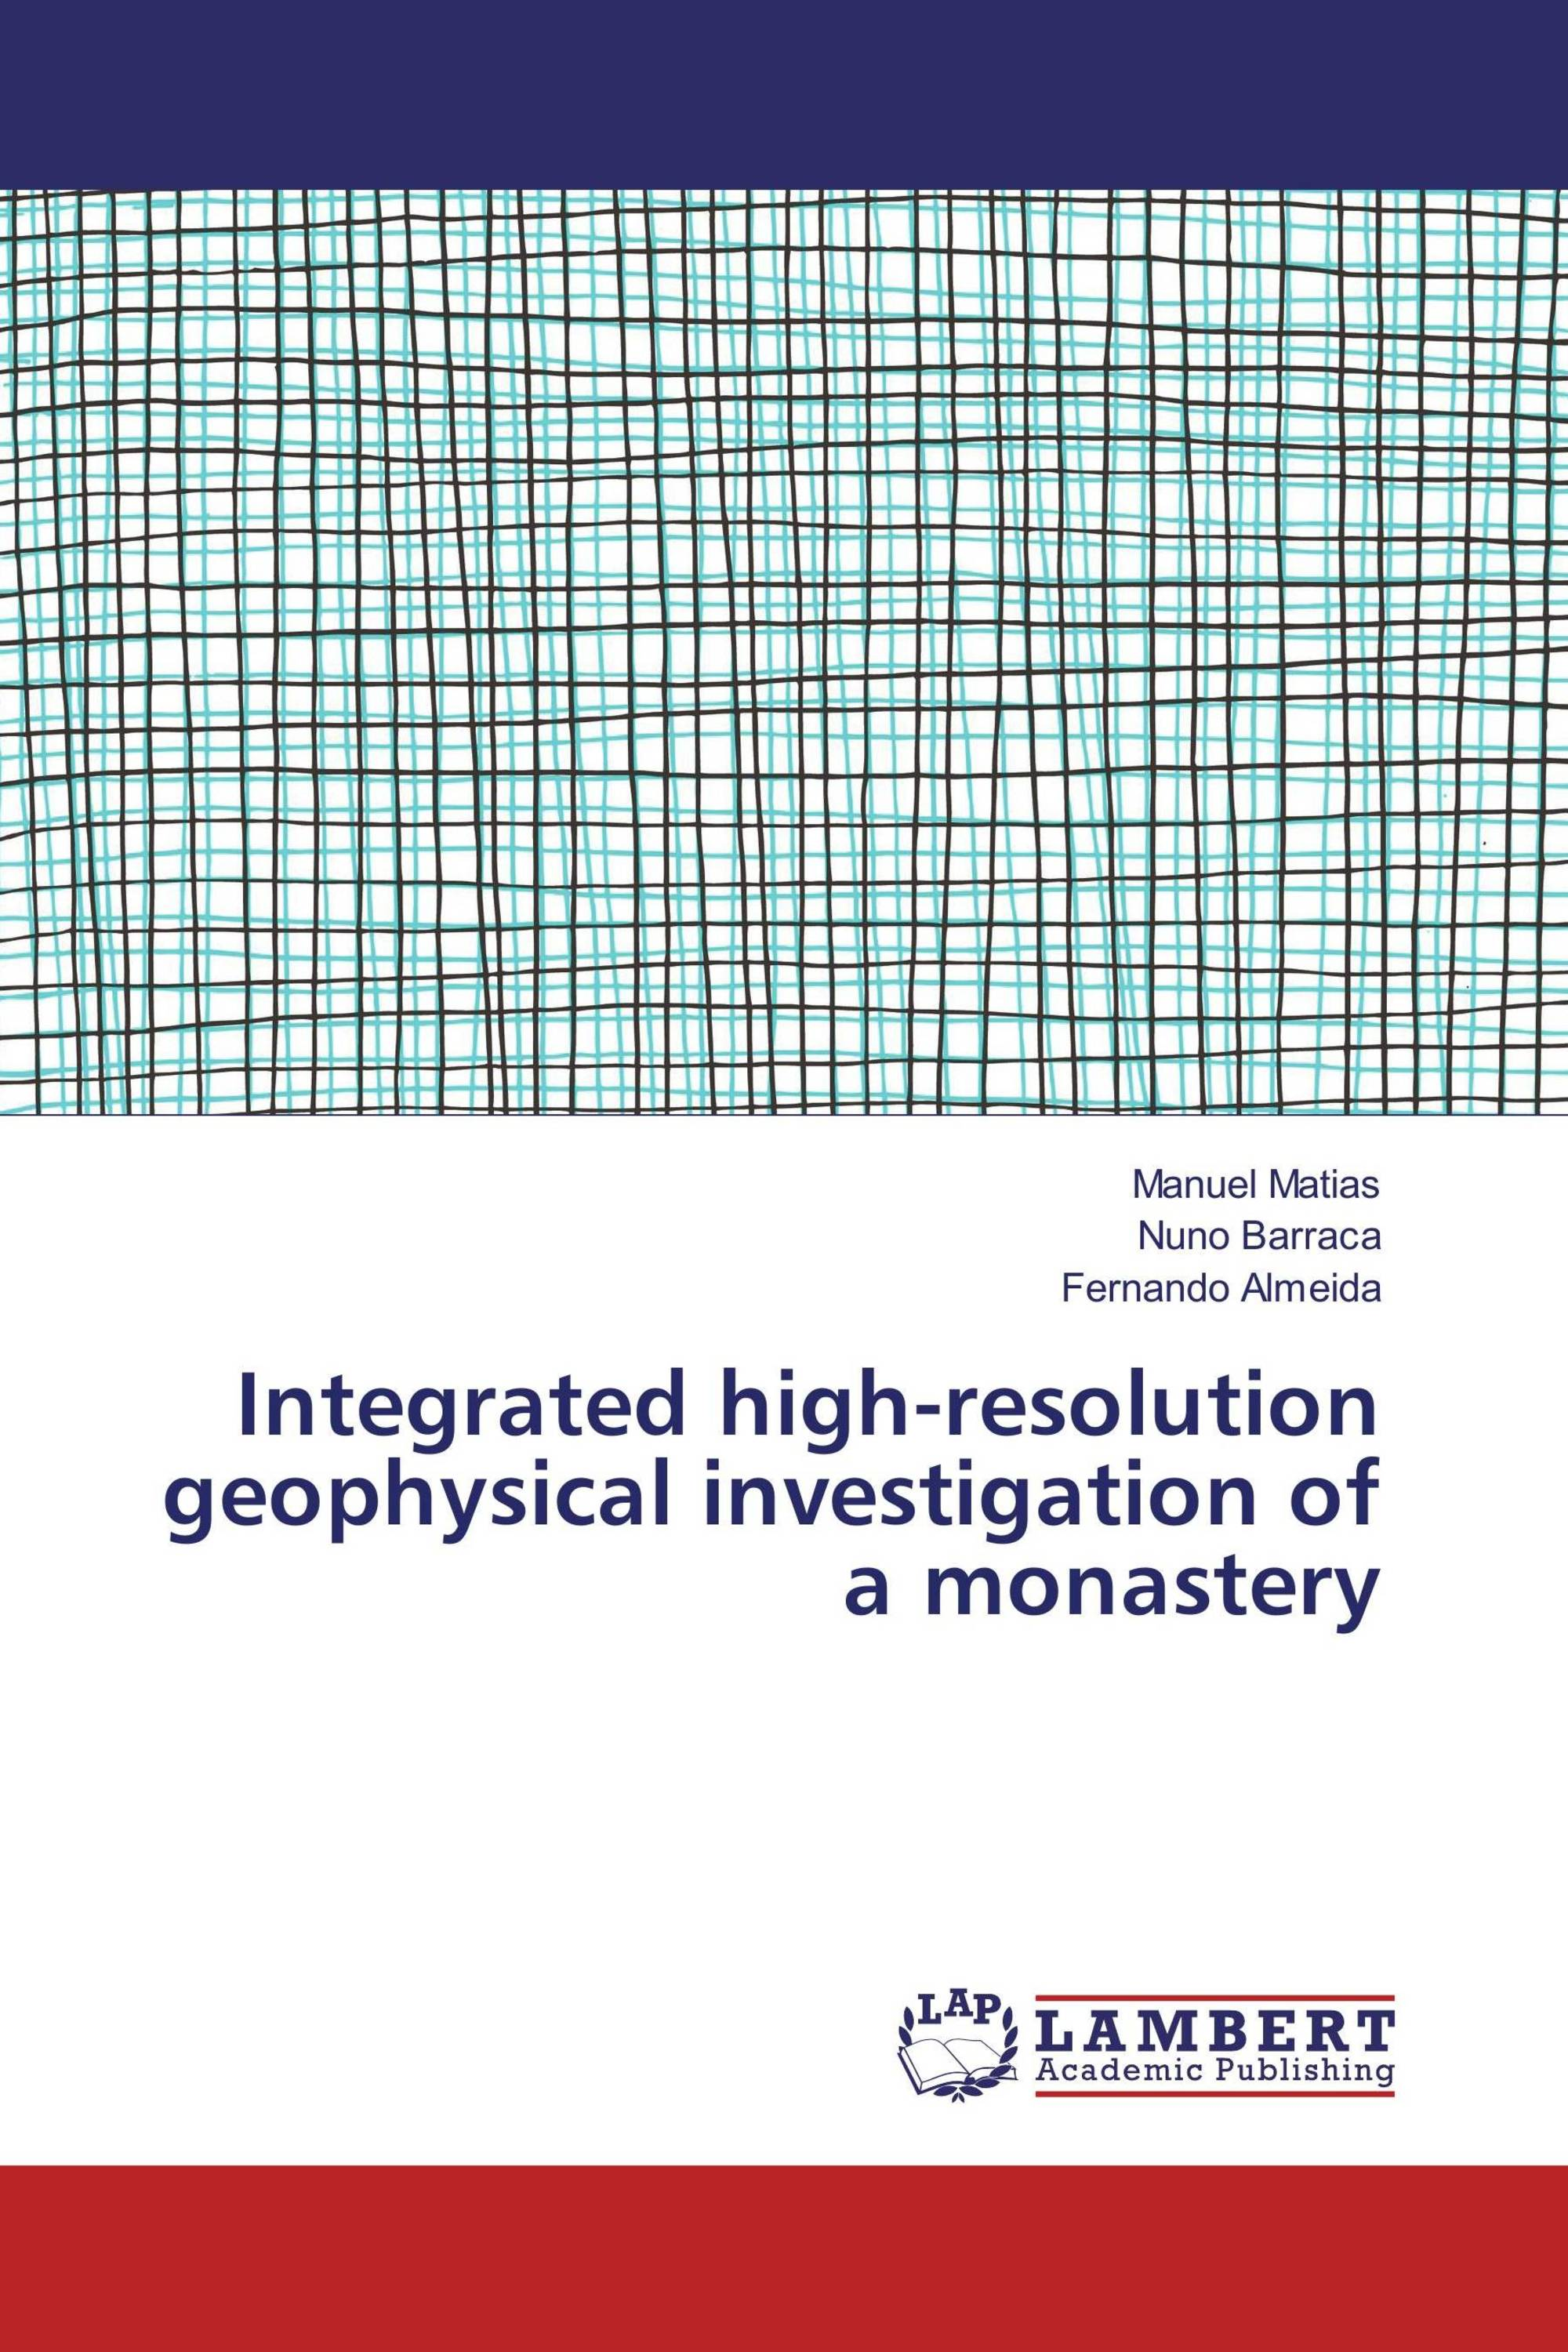 Integrated high-resolution geophysical investigation of a monastery